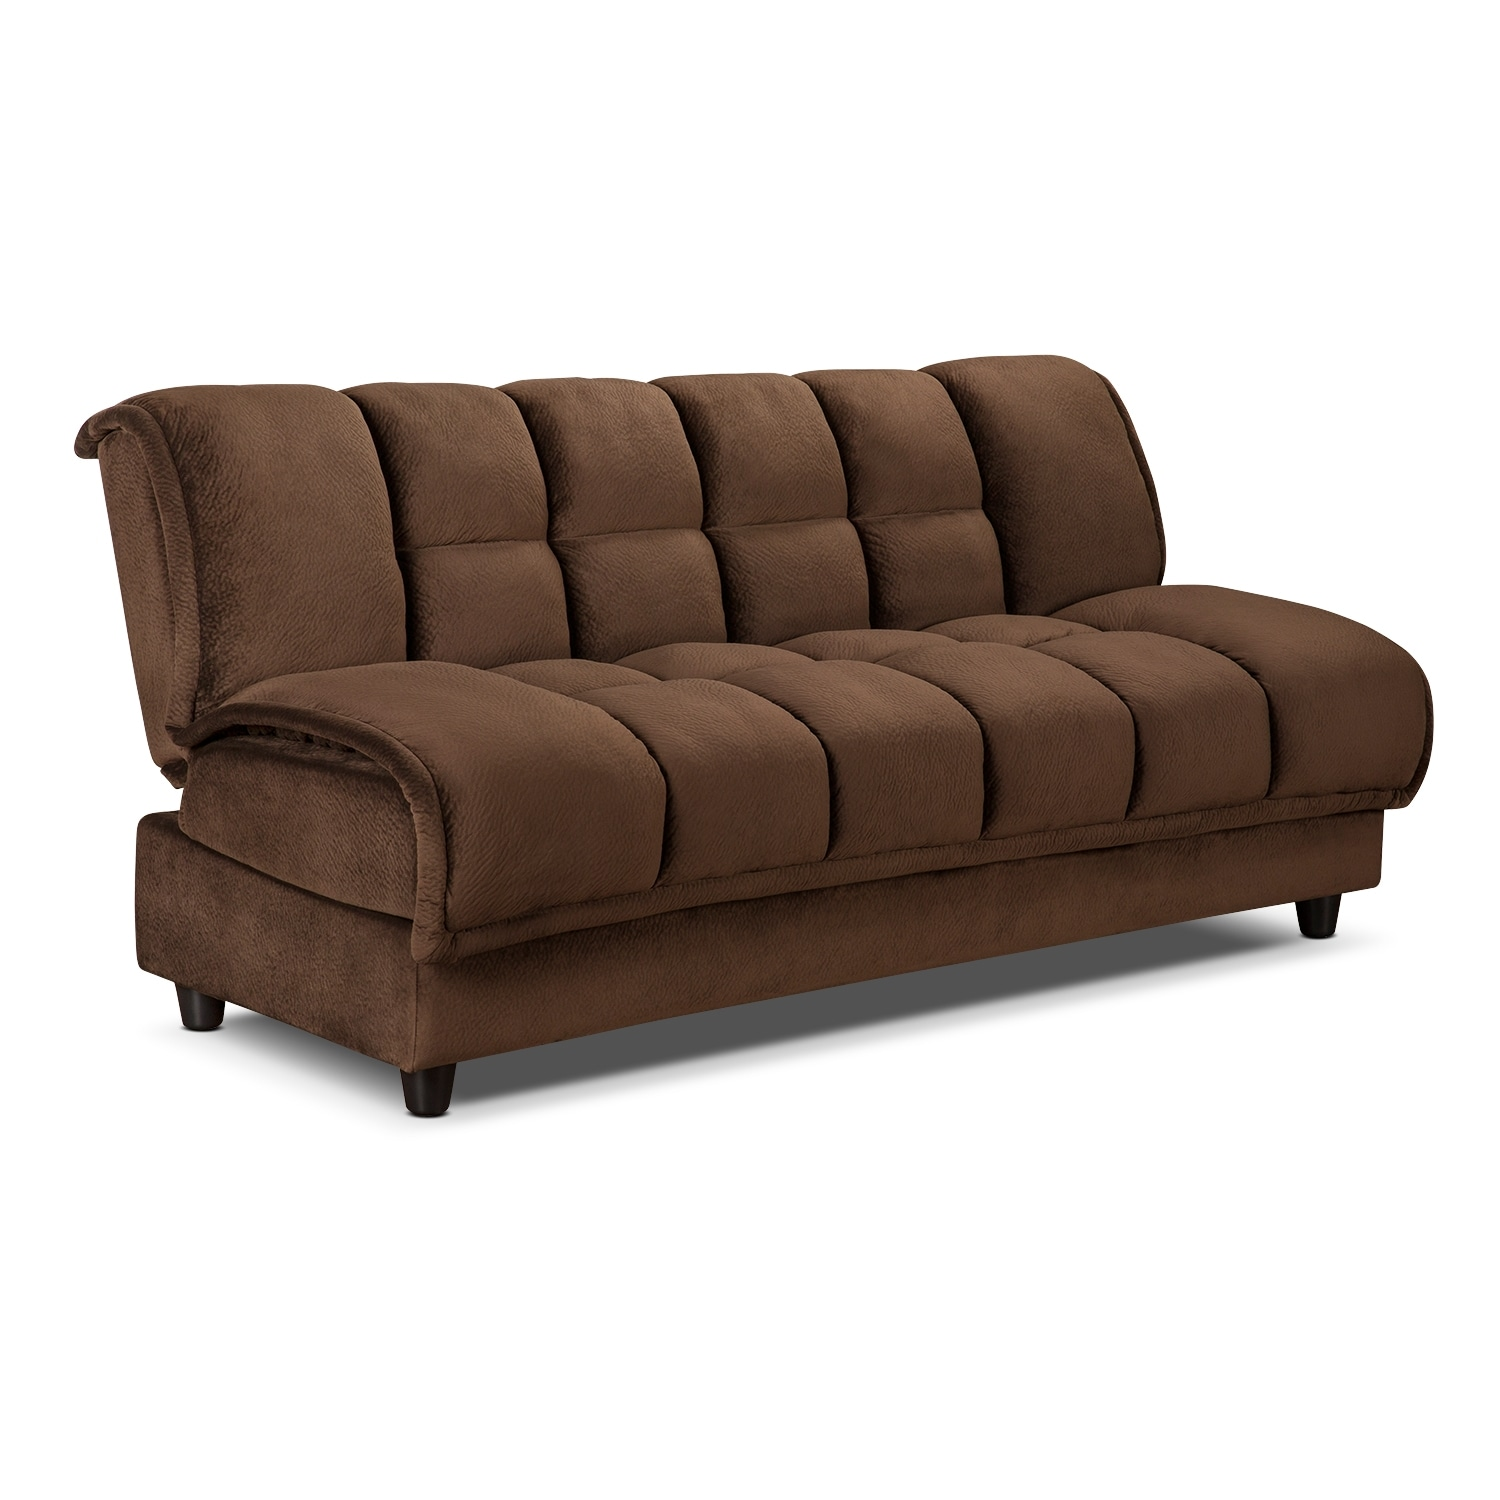 Bennett Futon Sofa Bed Espresso American Signature  : 349621 from www.americansignaturefurniture.com size 1500 x 1500 jpeg 544kB